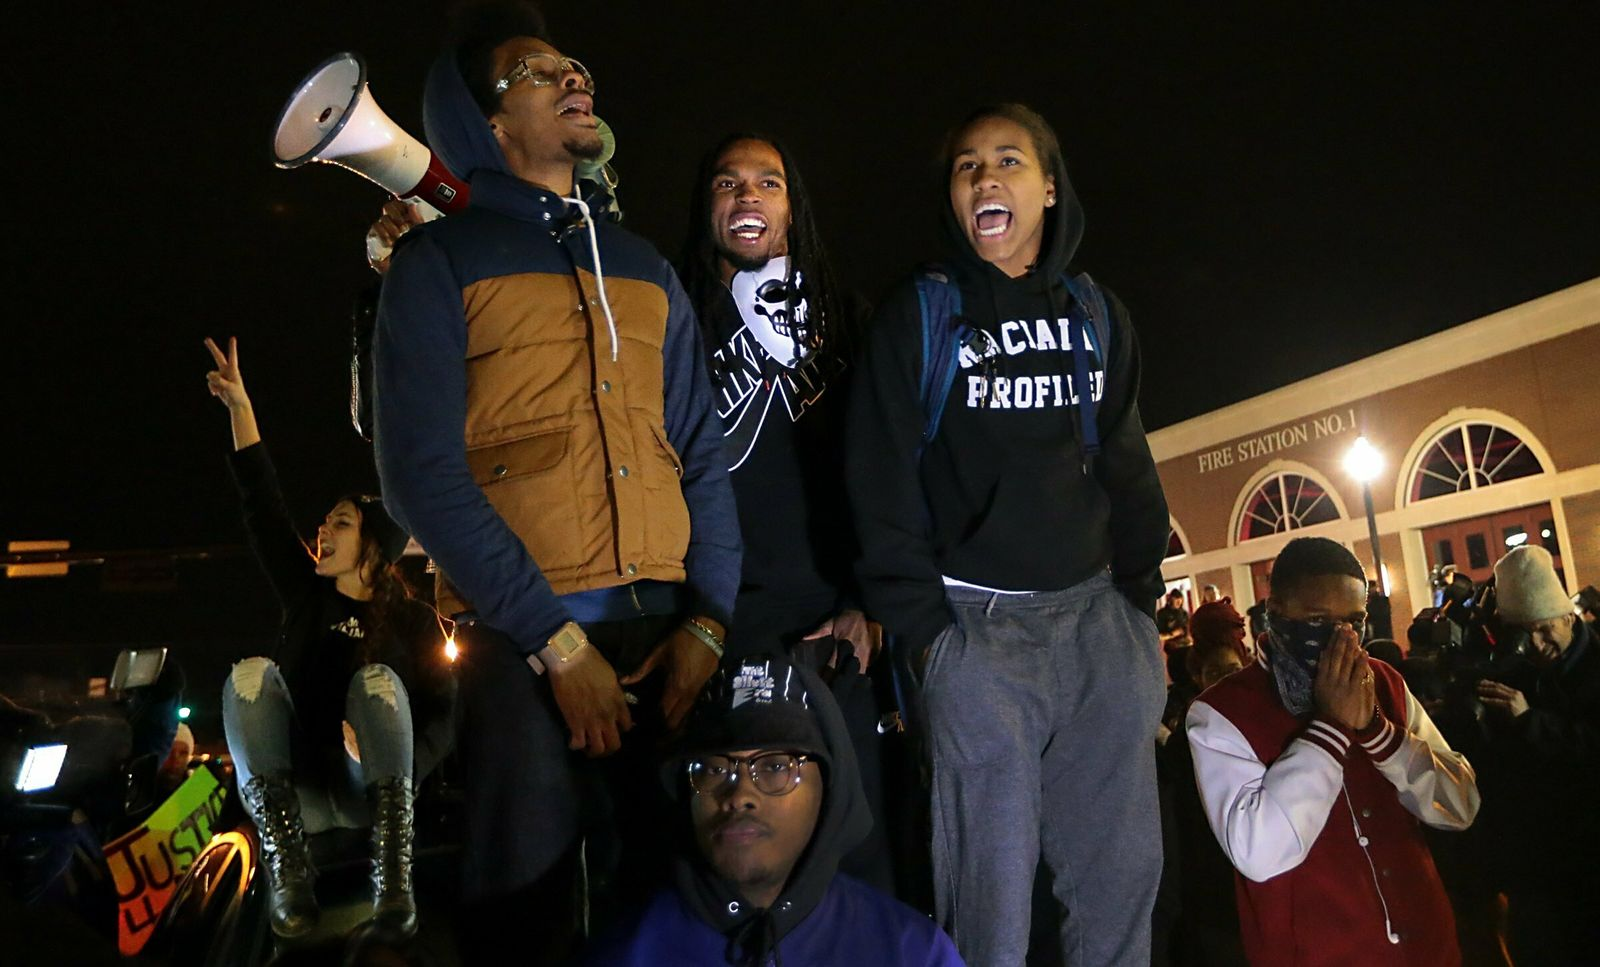 FILE - In this Nov. 24, 2014 file photo, Ferguson activist Daren Seals, top center, awaits the decision by a grand jury on whether to indict Darren Wilson in the death of Michael Brown in front of the police station in Ferguson , Mo.{ } (Robert Cohen/St. Louis Post-Dispatch via AP, File)